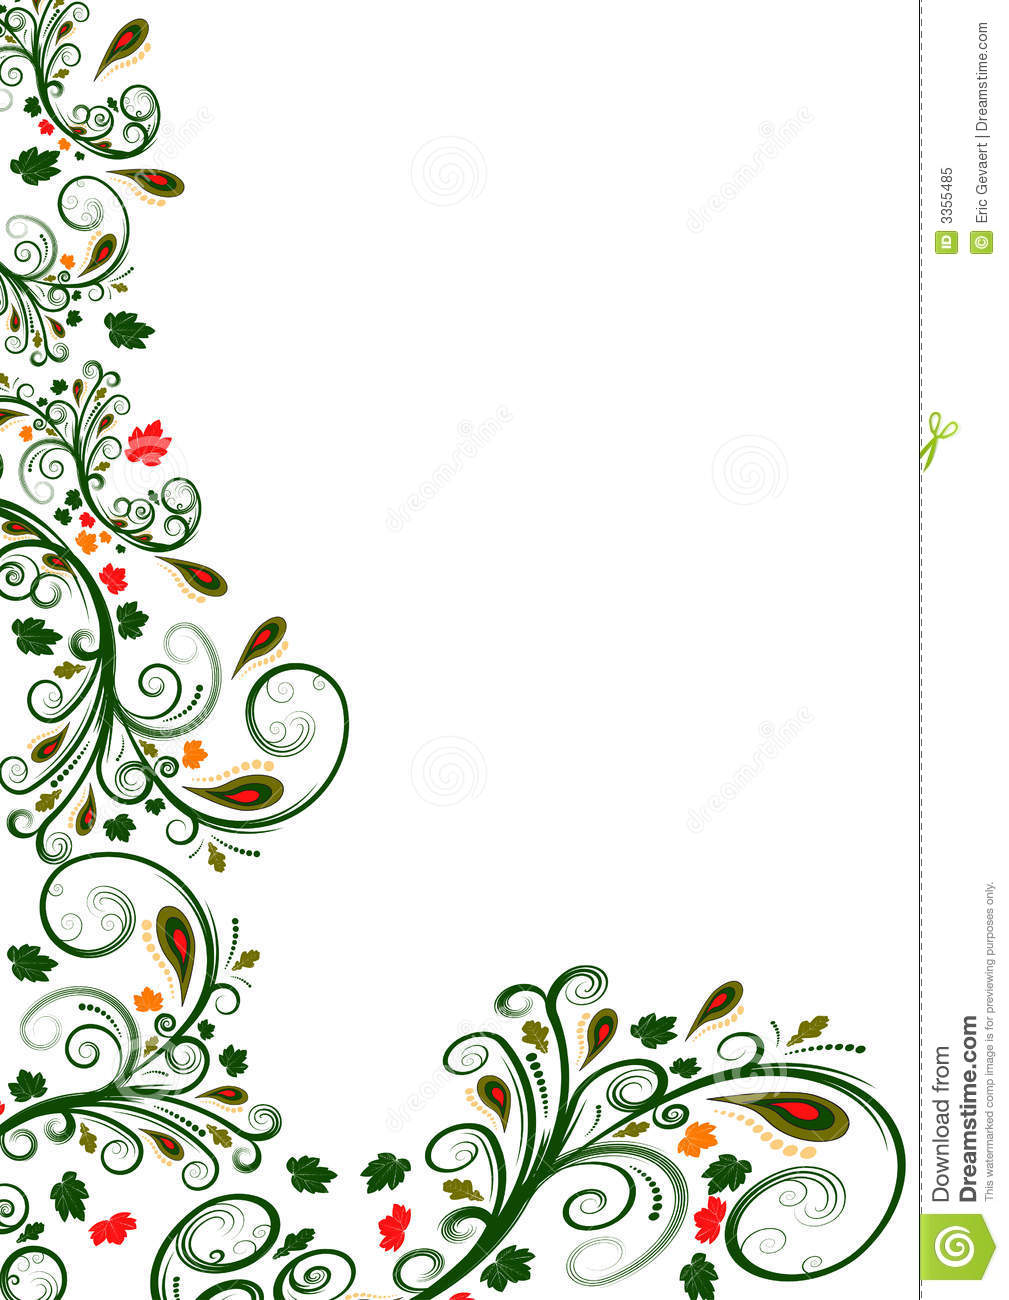 18 Flower Border Vector Images - Free Floral Vector ...